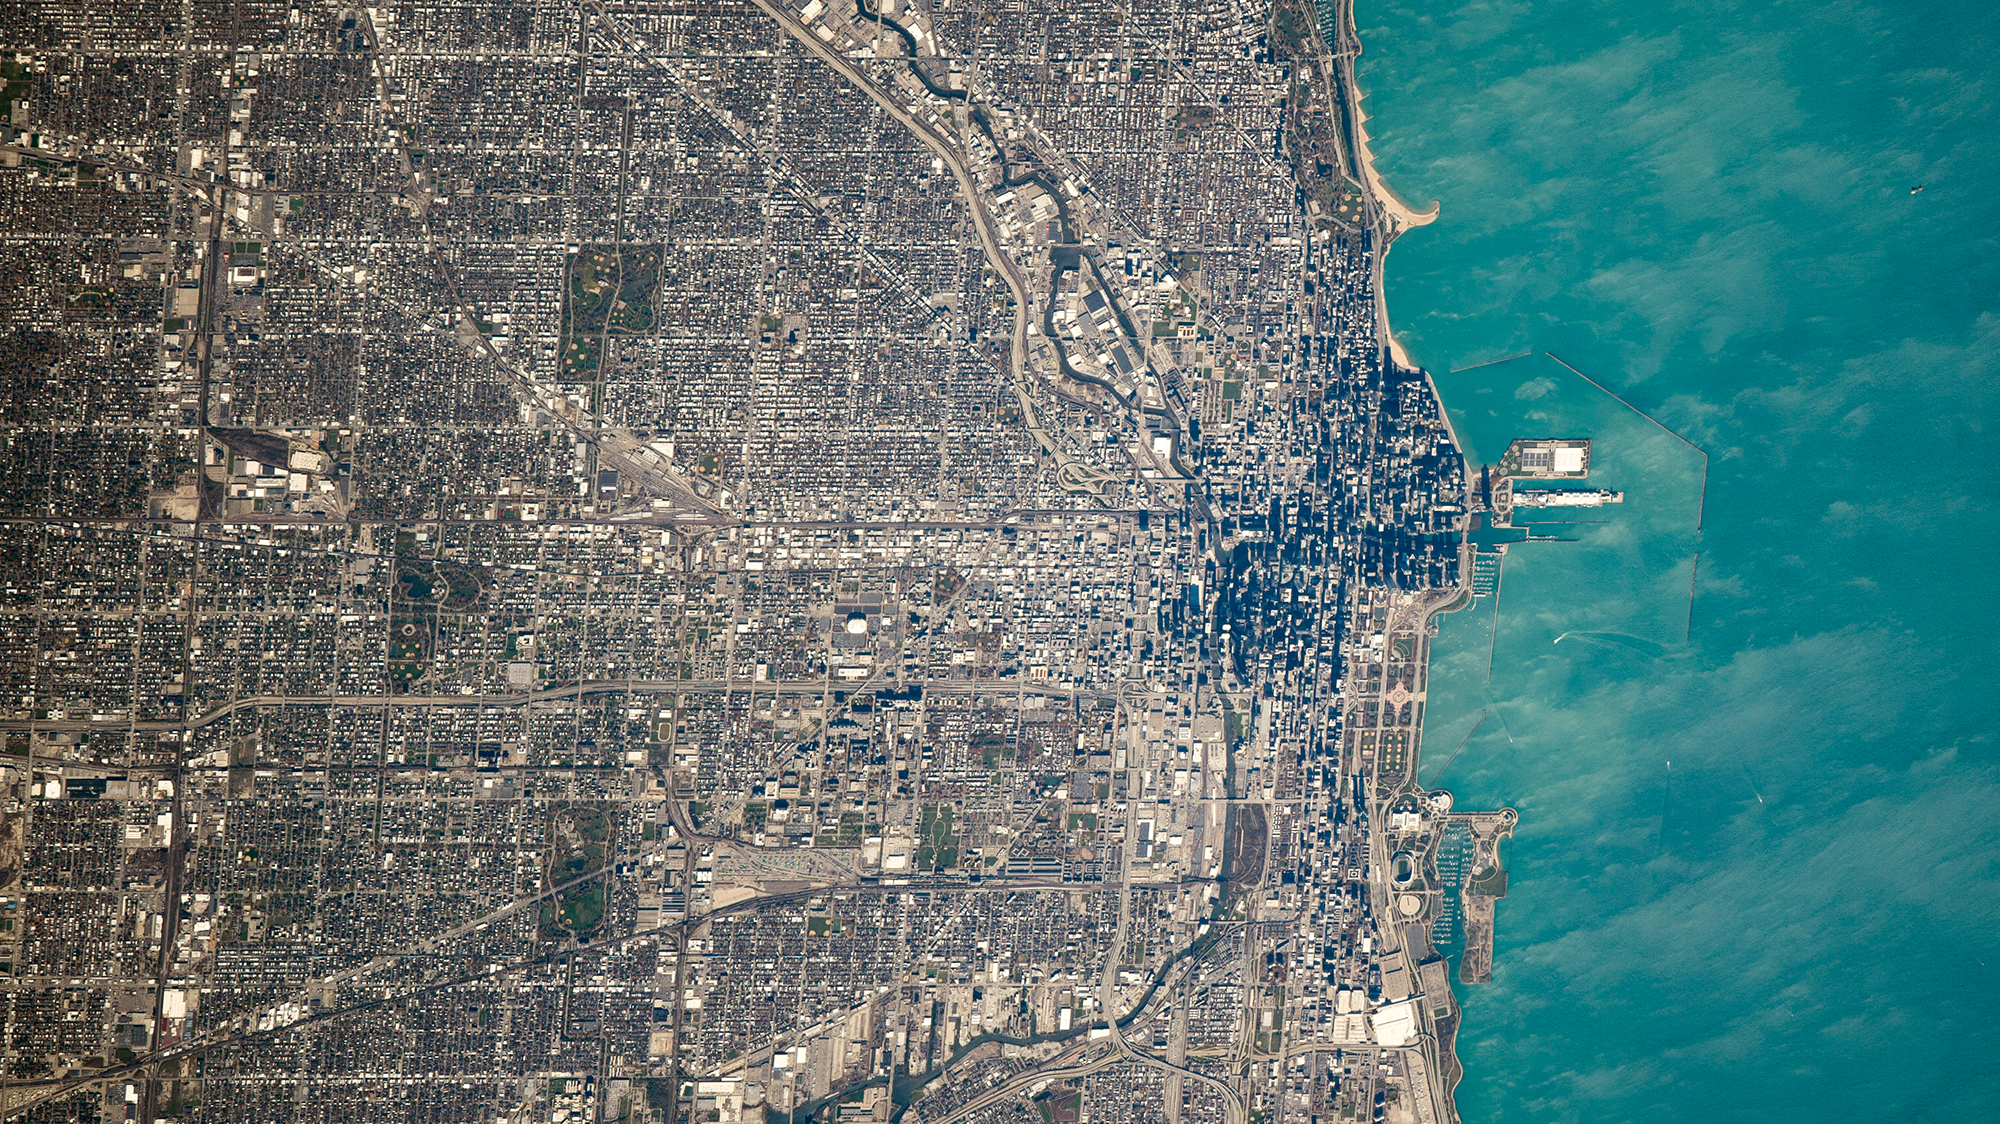 NASA image of the Chicago region from space.